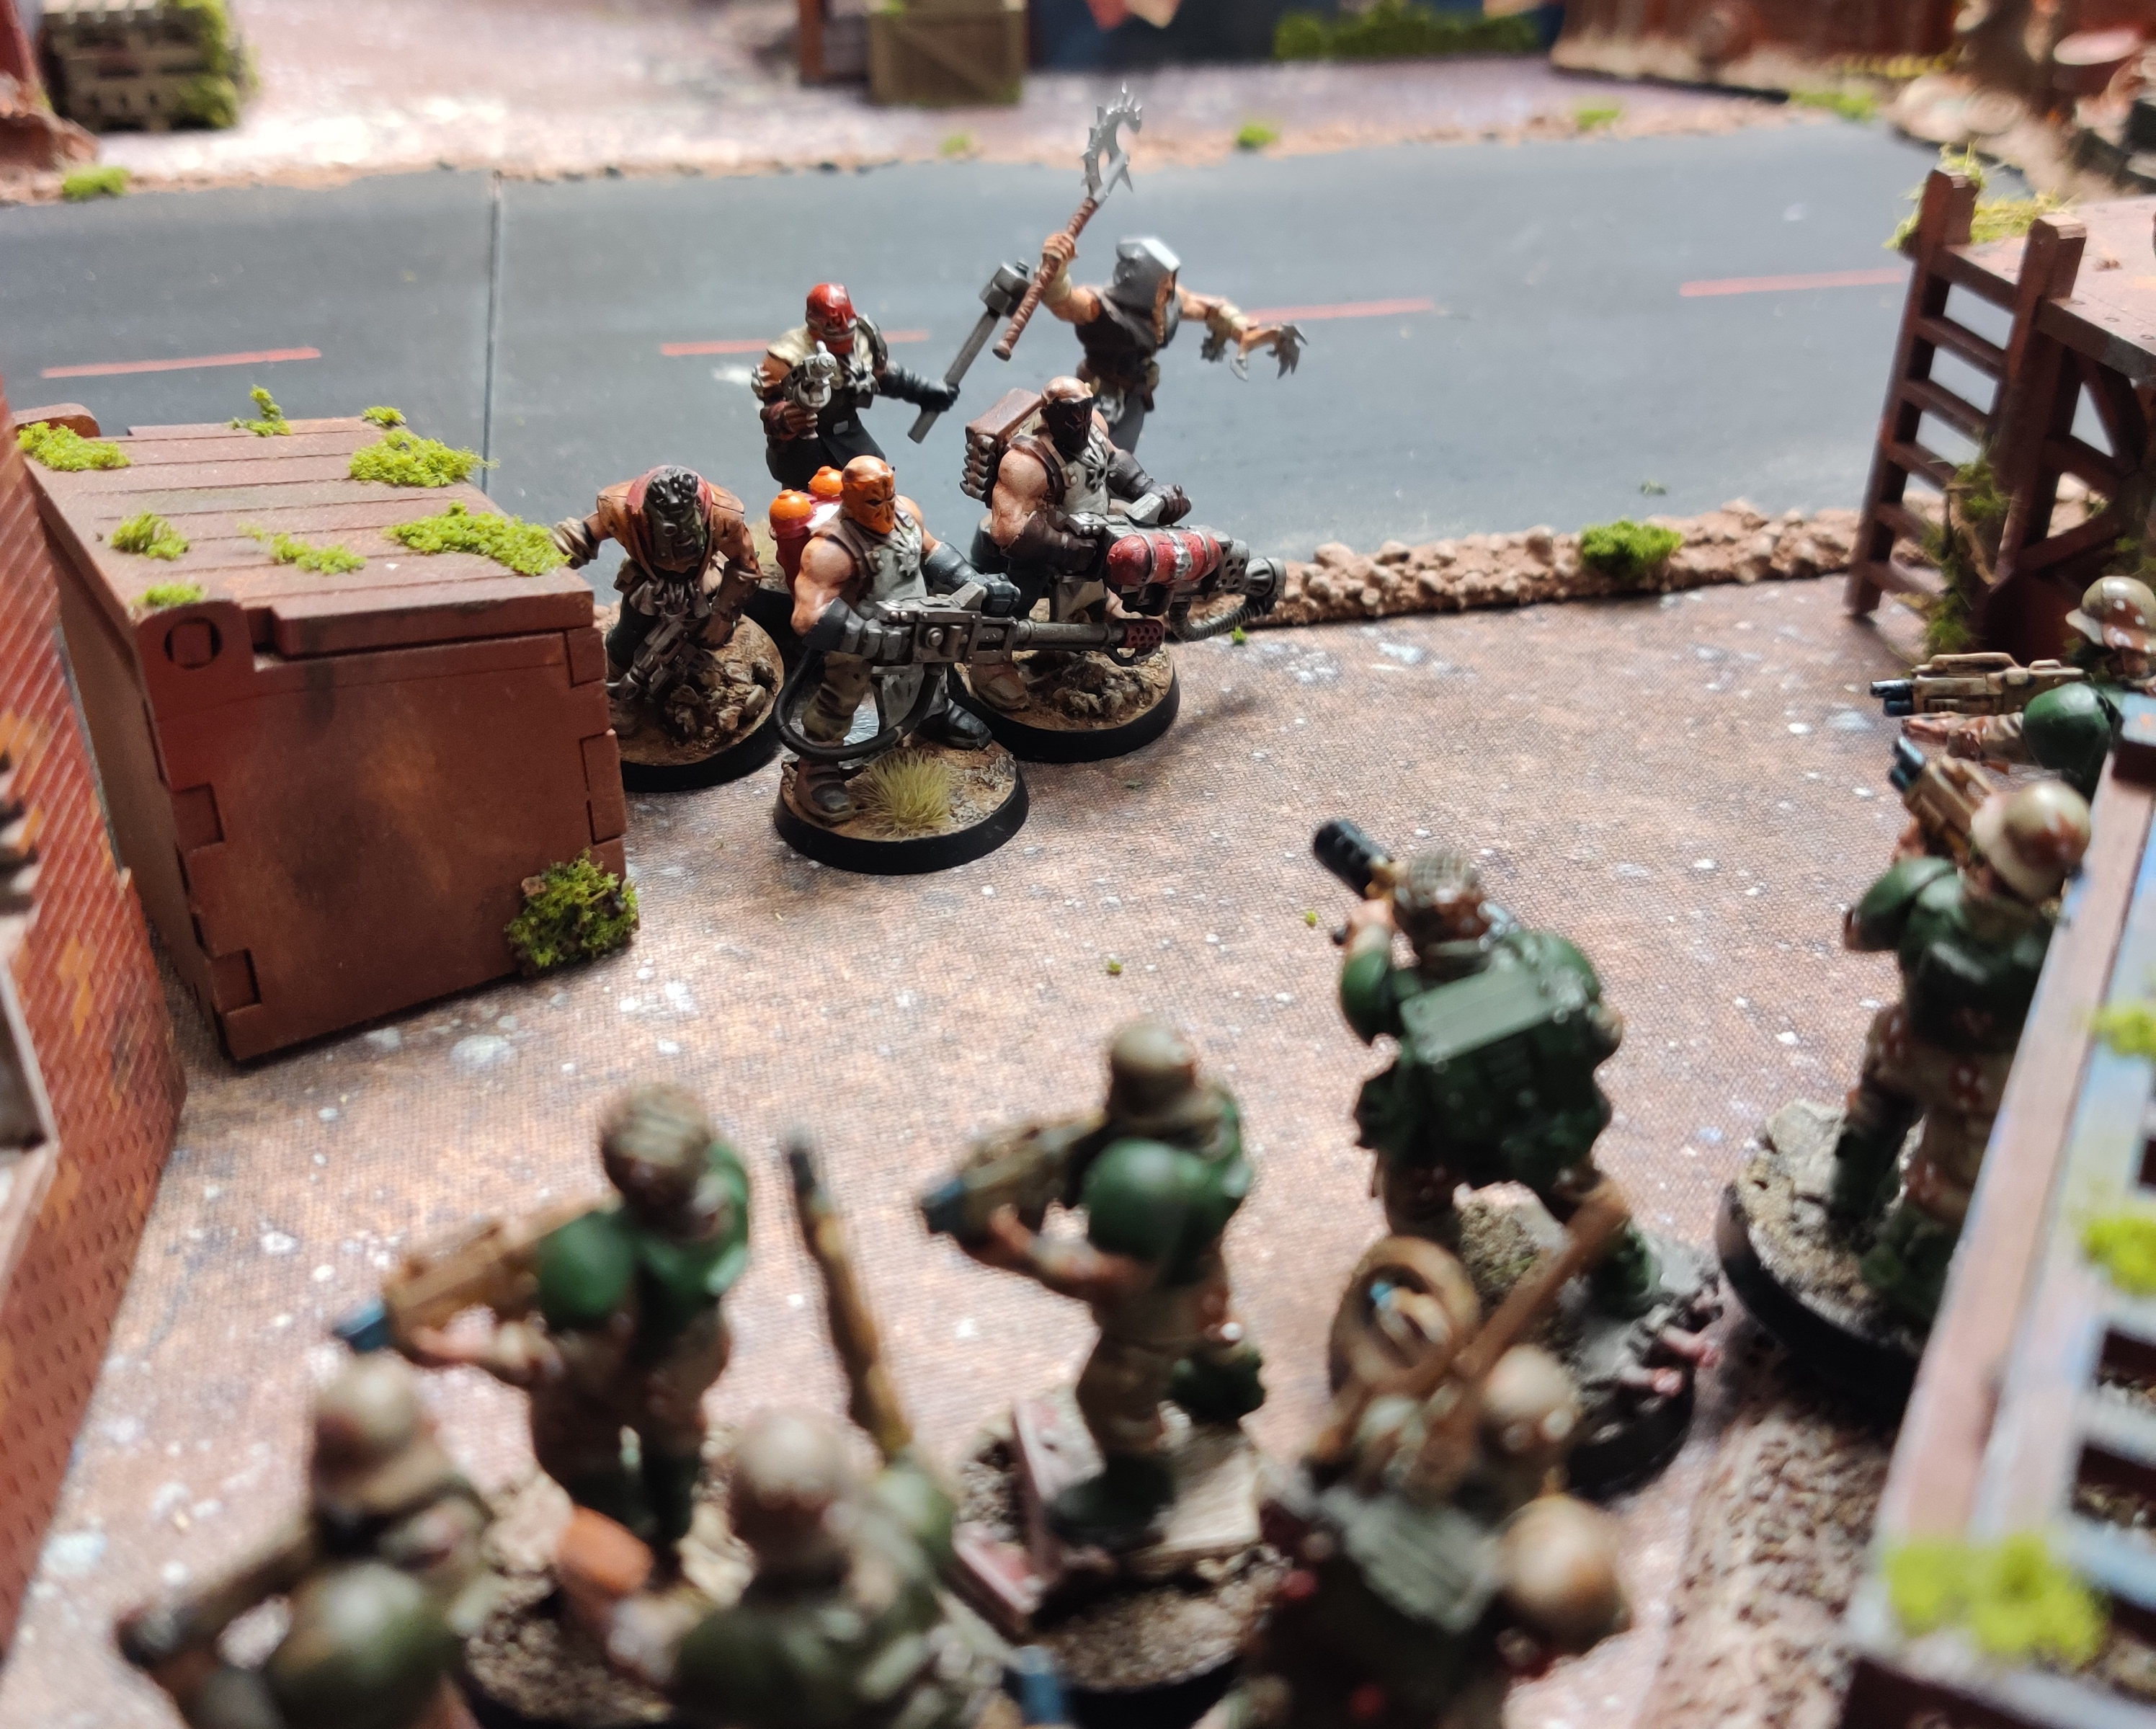 2nd squad engaging insurgents